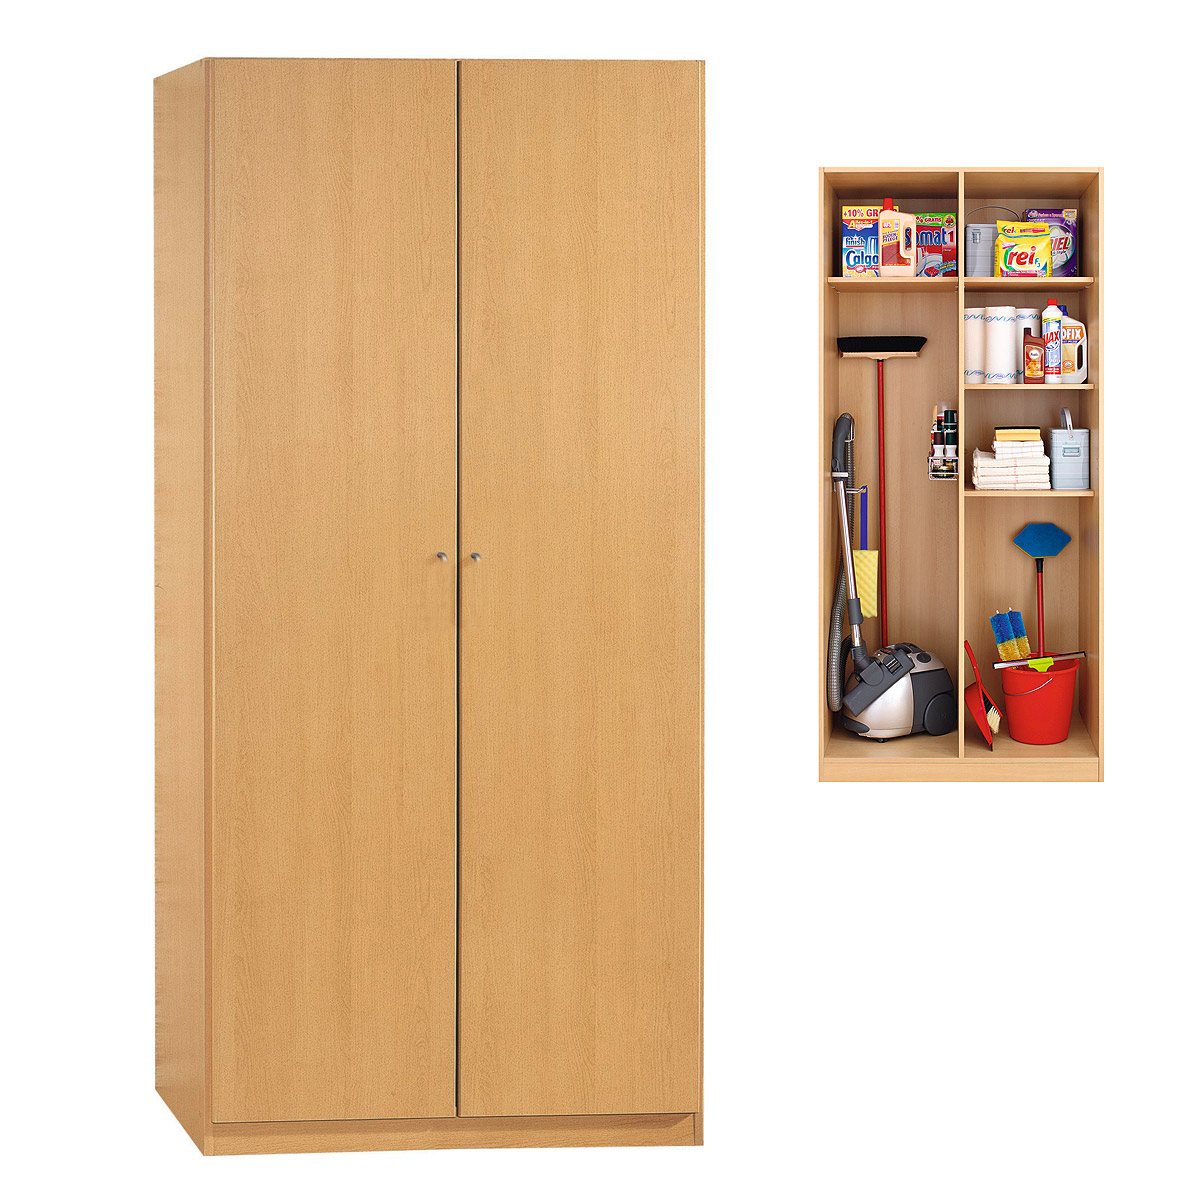 kleiderschrank buche hell kleiderschrank bremen w scheschrank in buche hell 91 cm. Black Bedroom Furniture Sets. Home Design Ideas